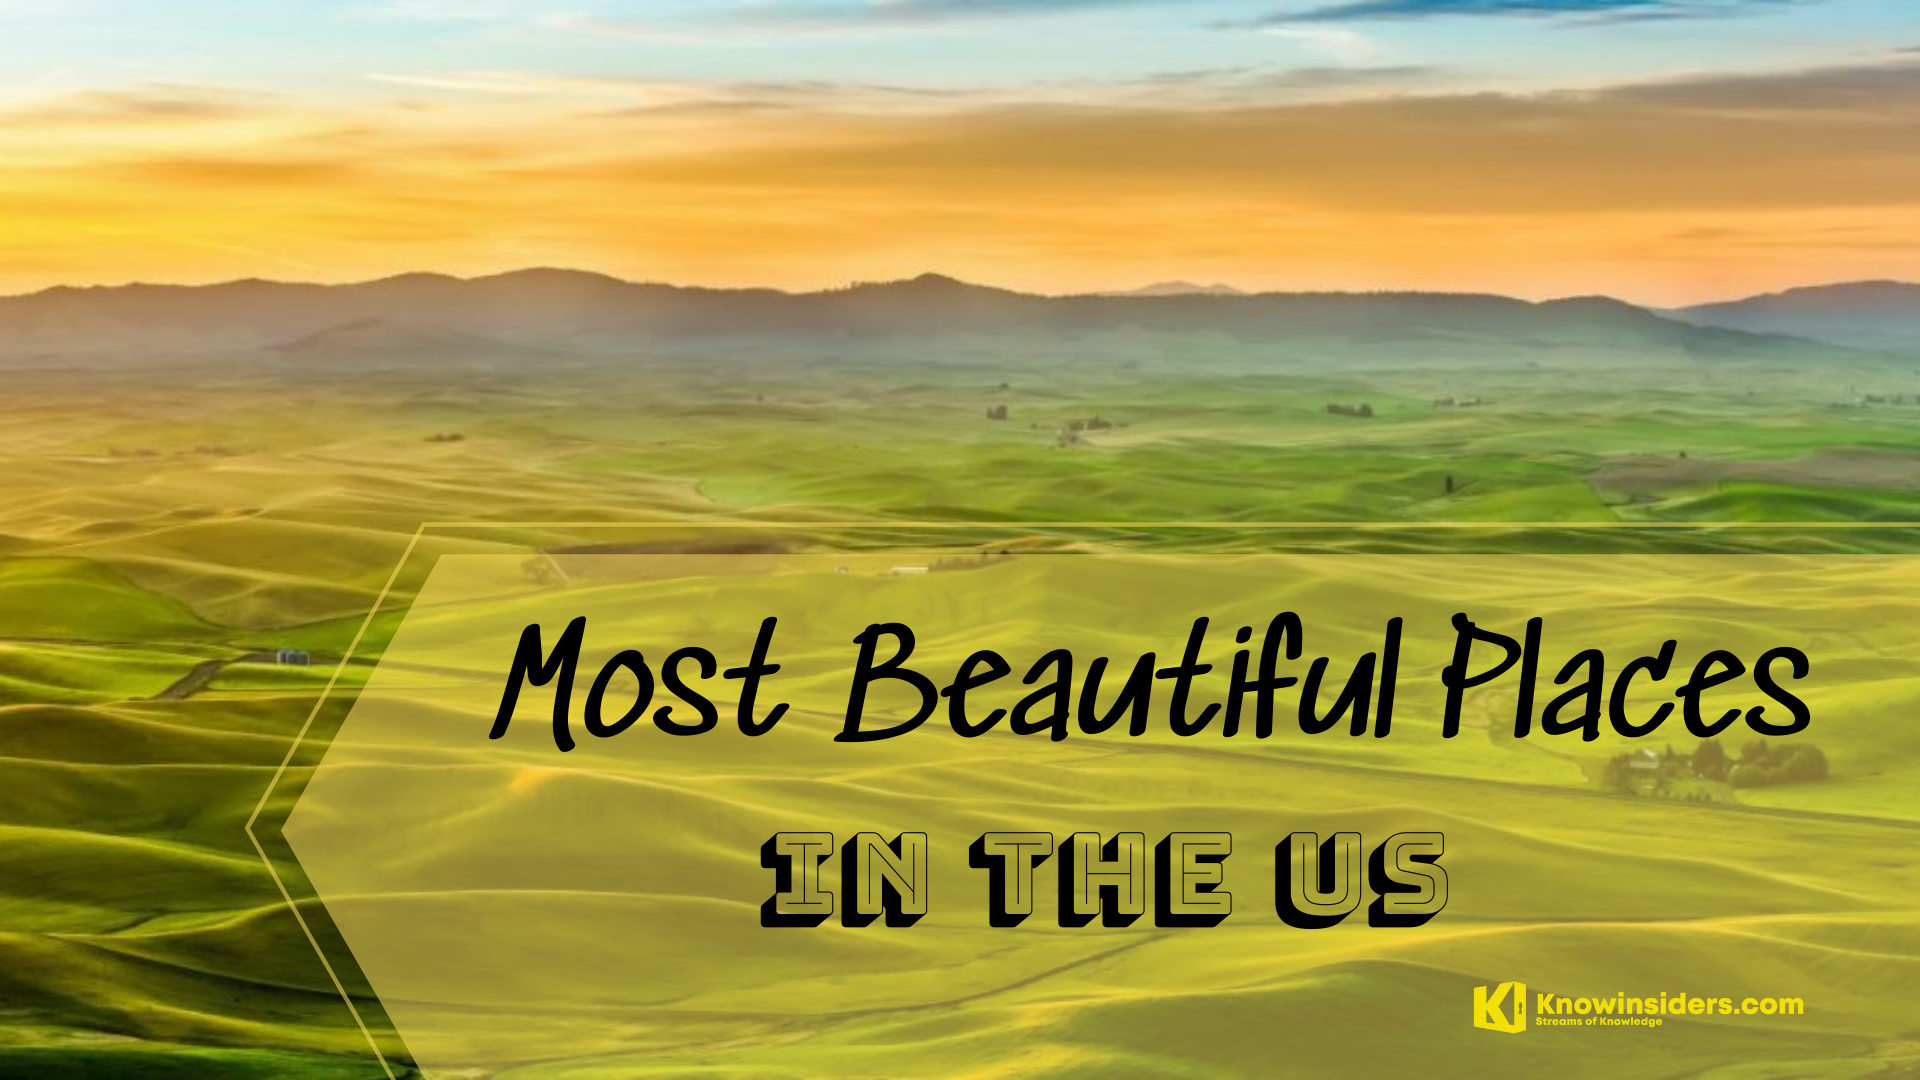 Top 15 Most Beautiful Places In The US